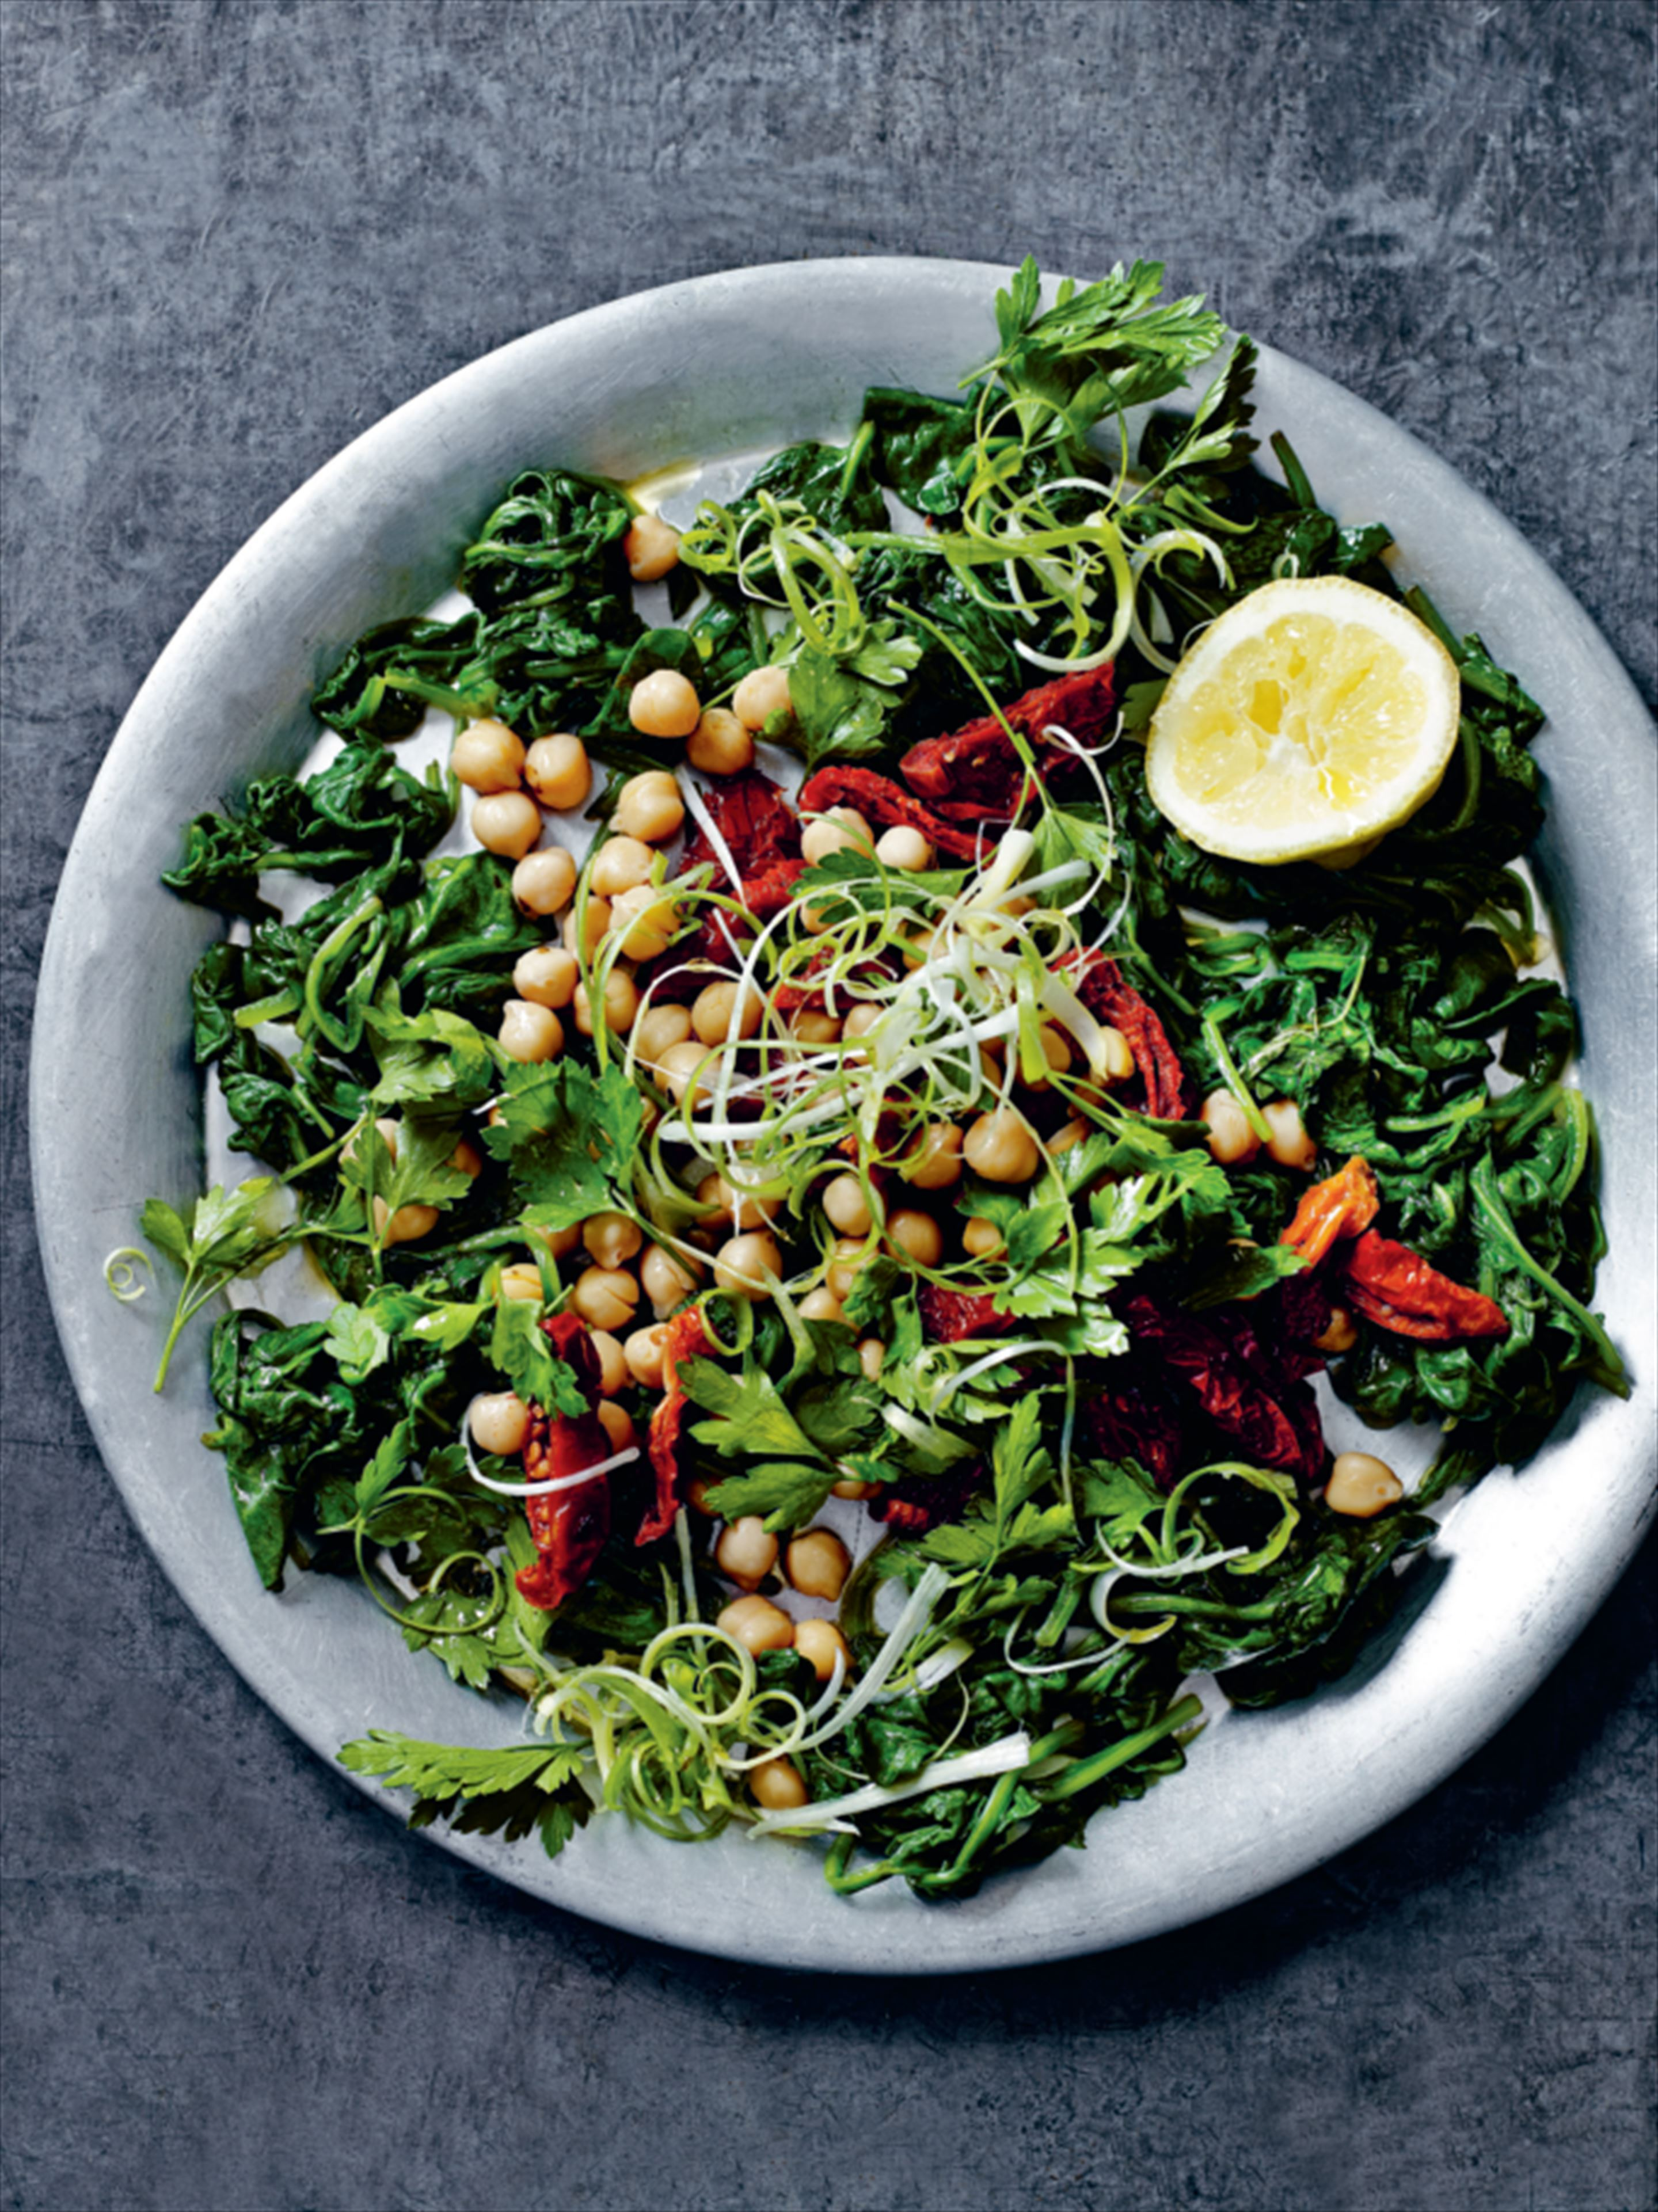 Herbed chickpea salad with sun-dried tomatoes and spinach